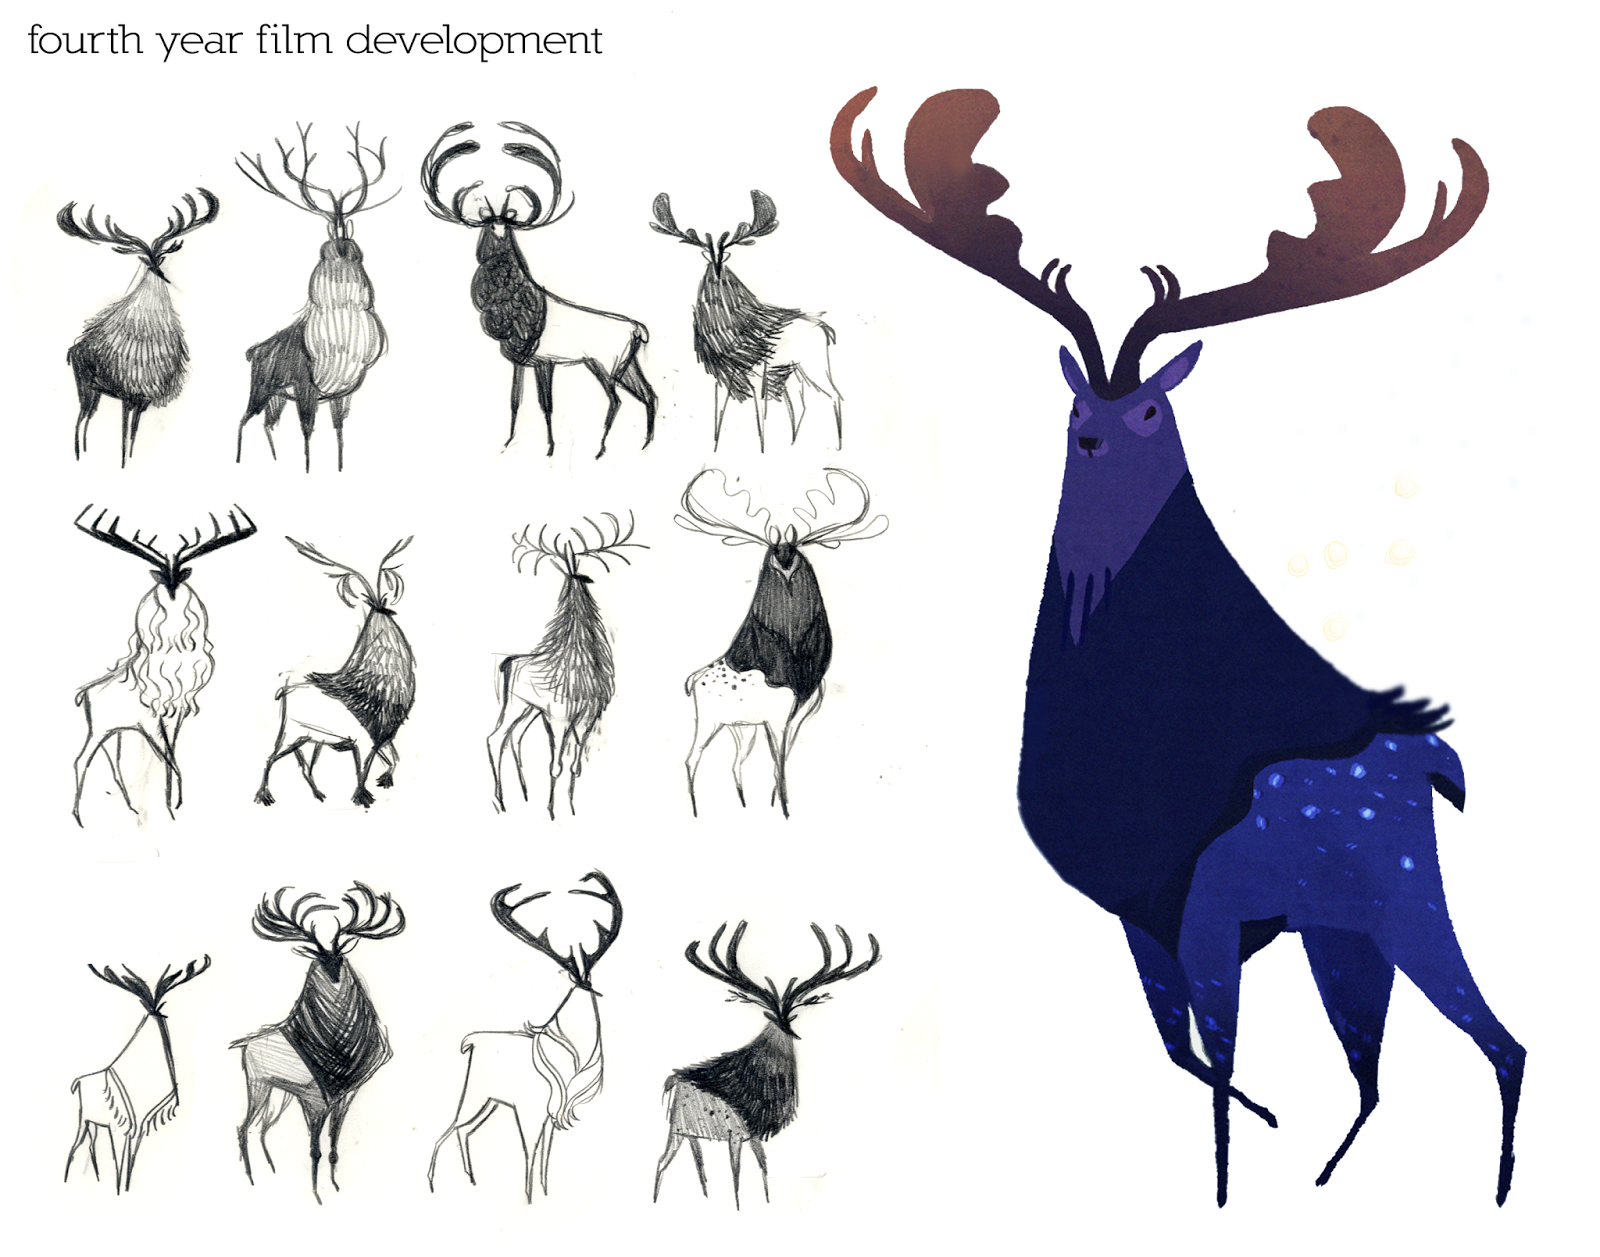 Character Design Visual Development Portfolio : Kari casady visual development portfolio